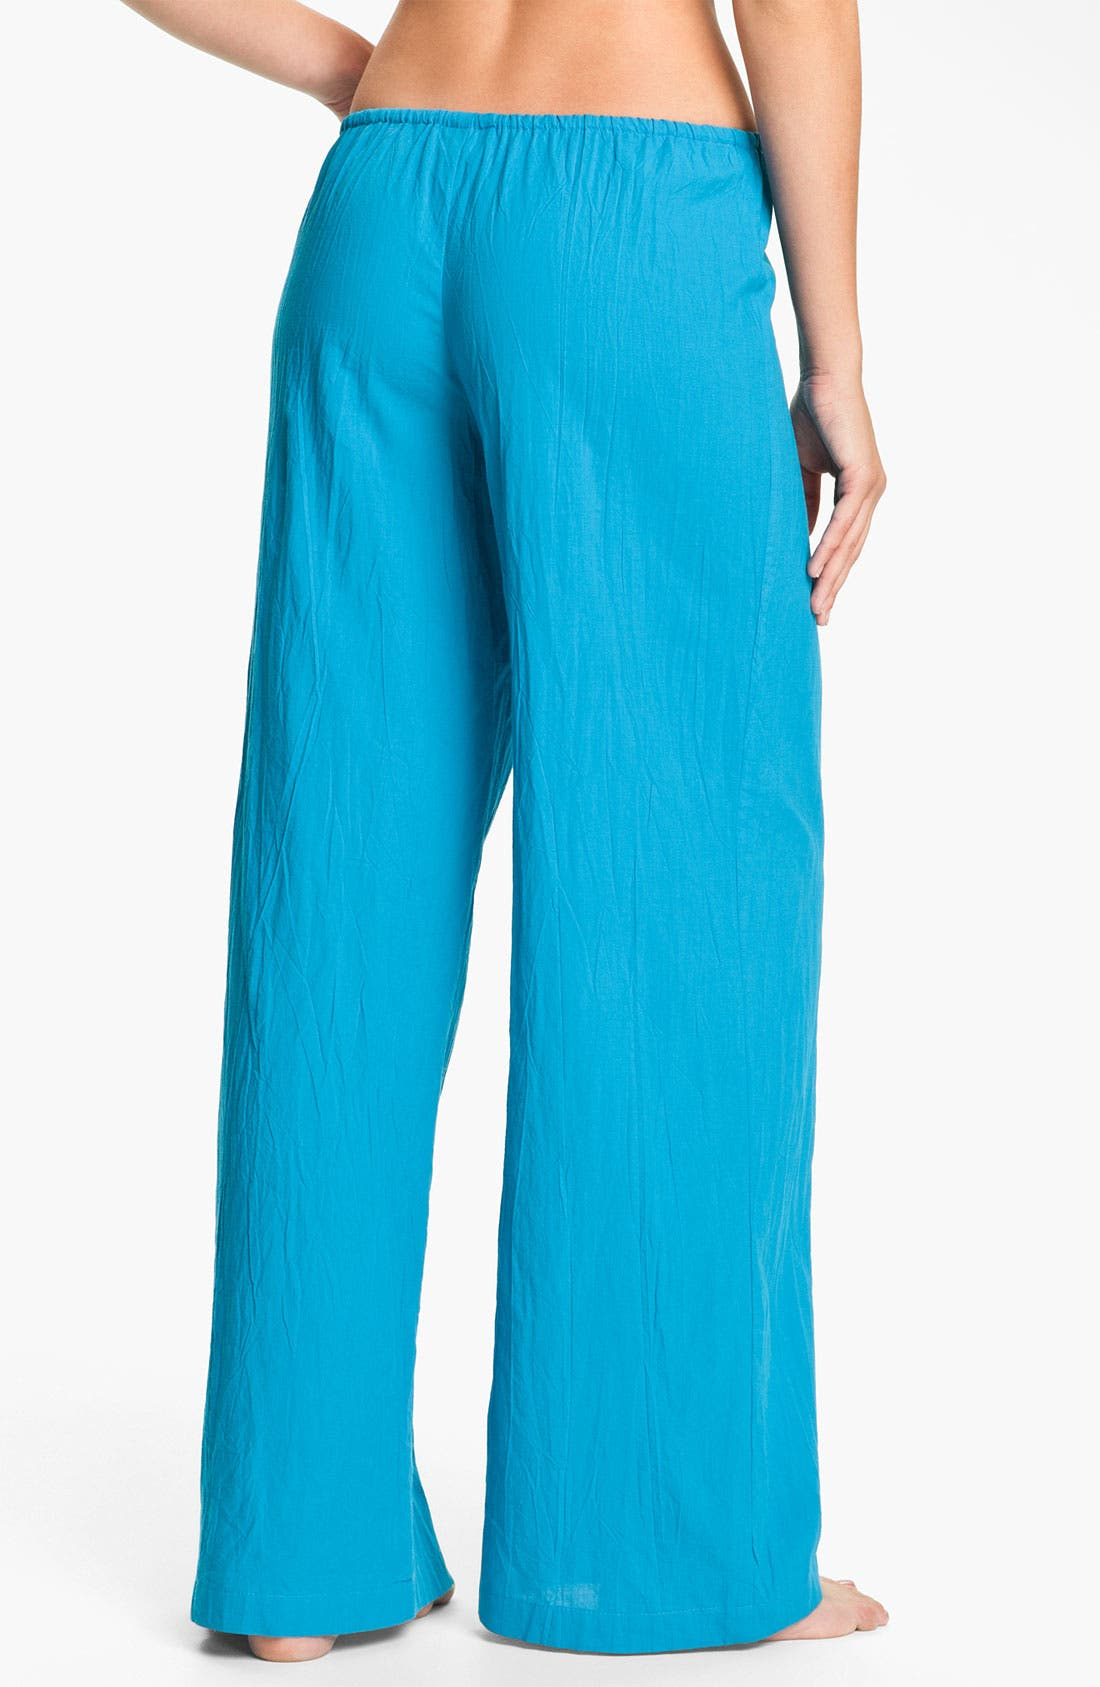 Alternate Image 2  - Tommy Bahama Crinkle Drawstring Pants